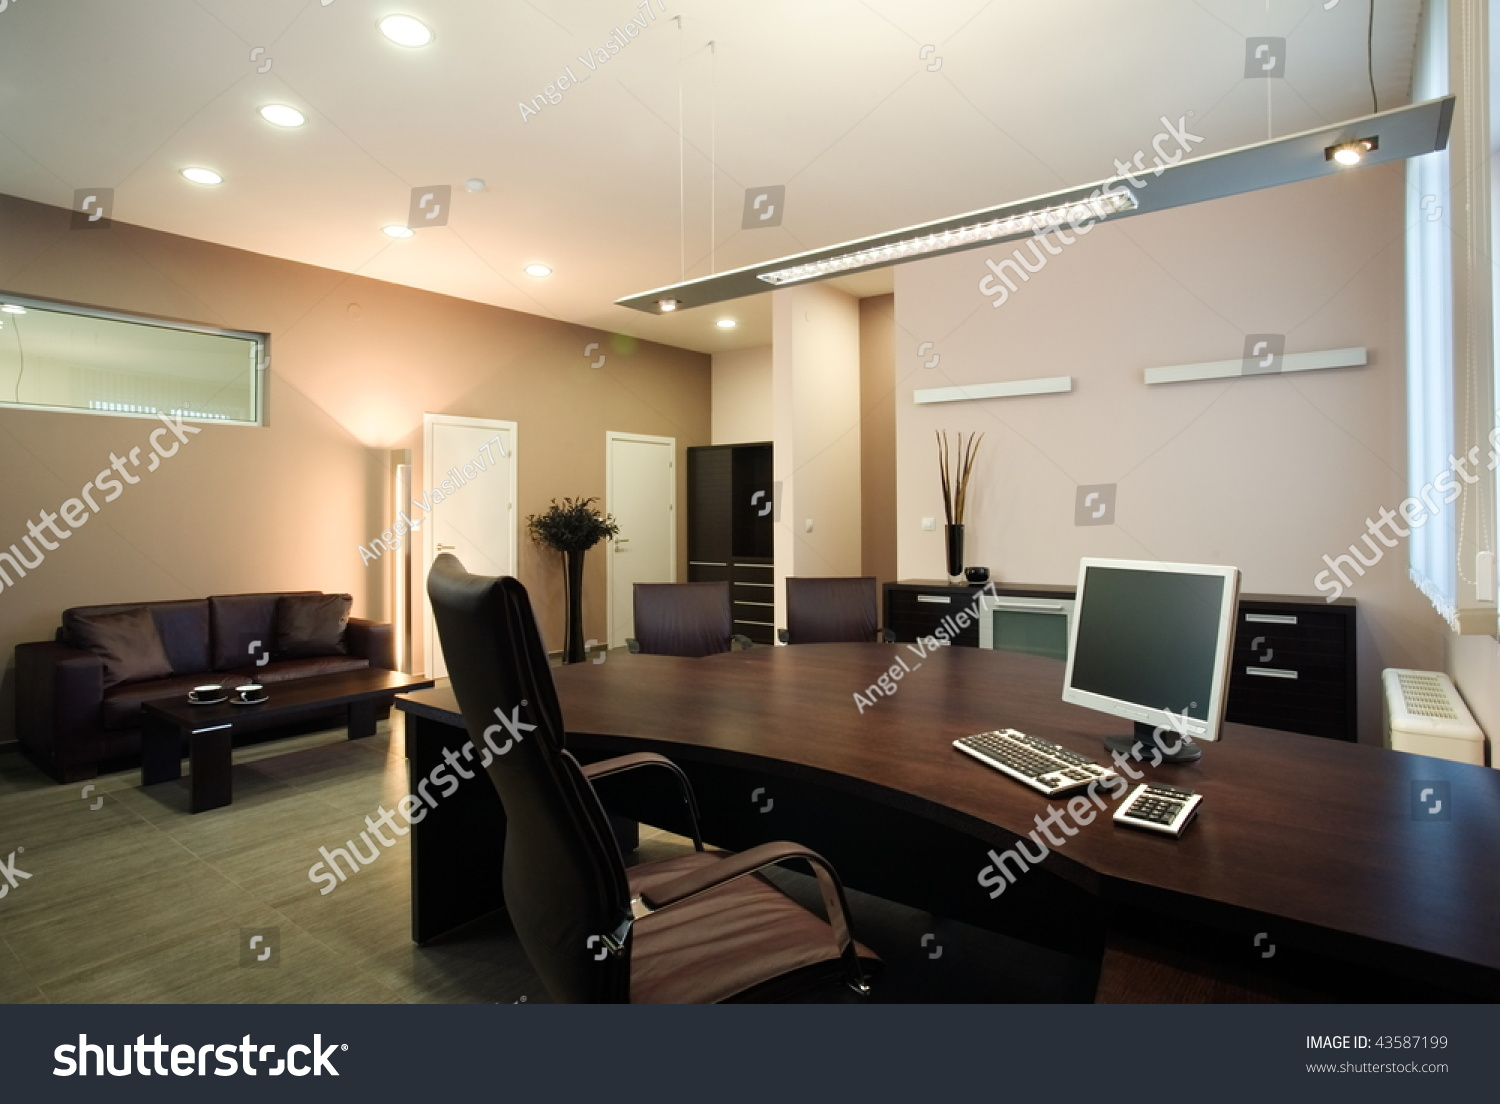 Beautiful and modern office manager interior design stock for Beautiful modern office design